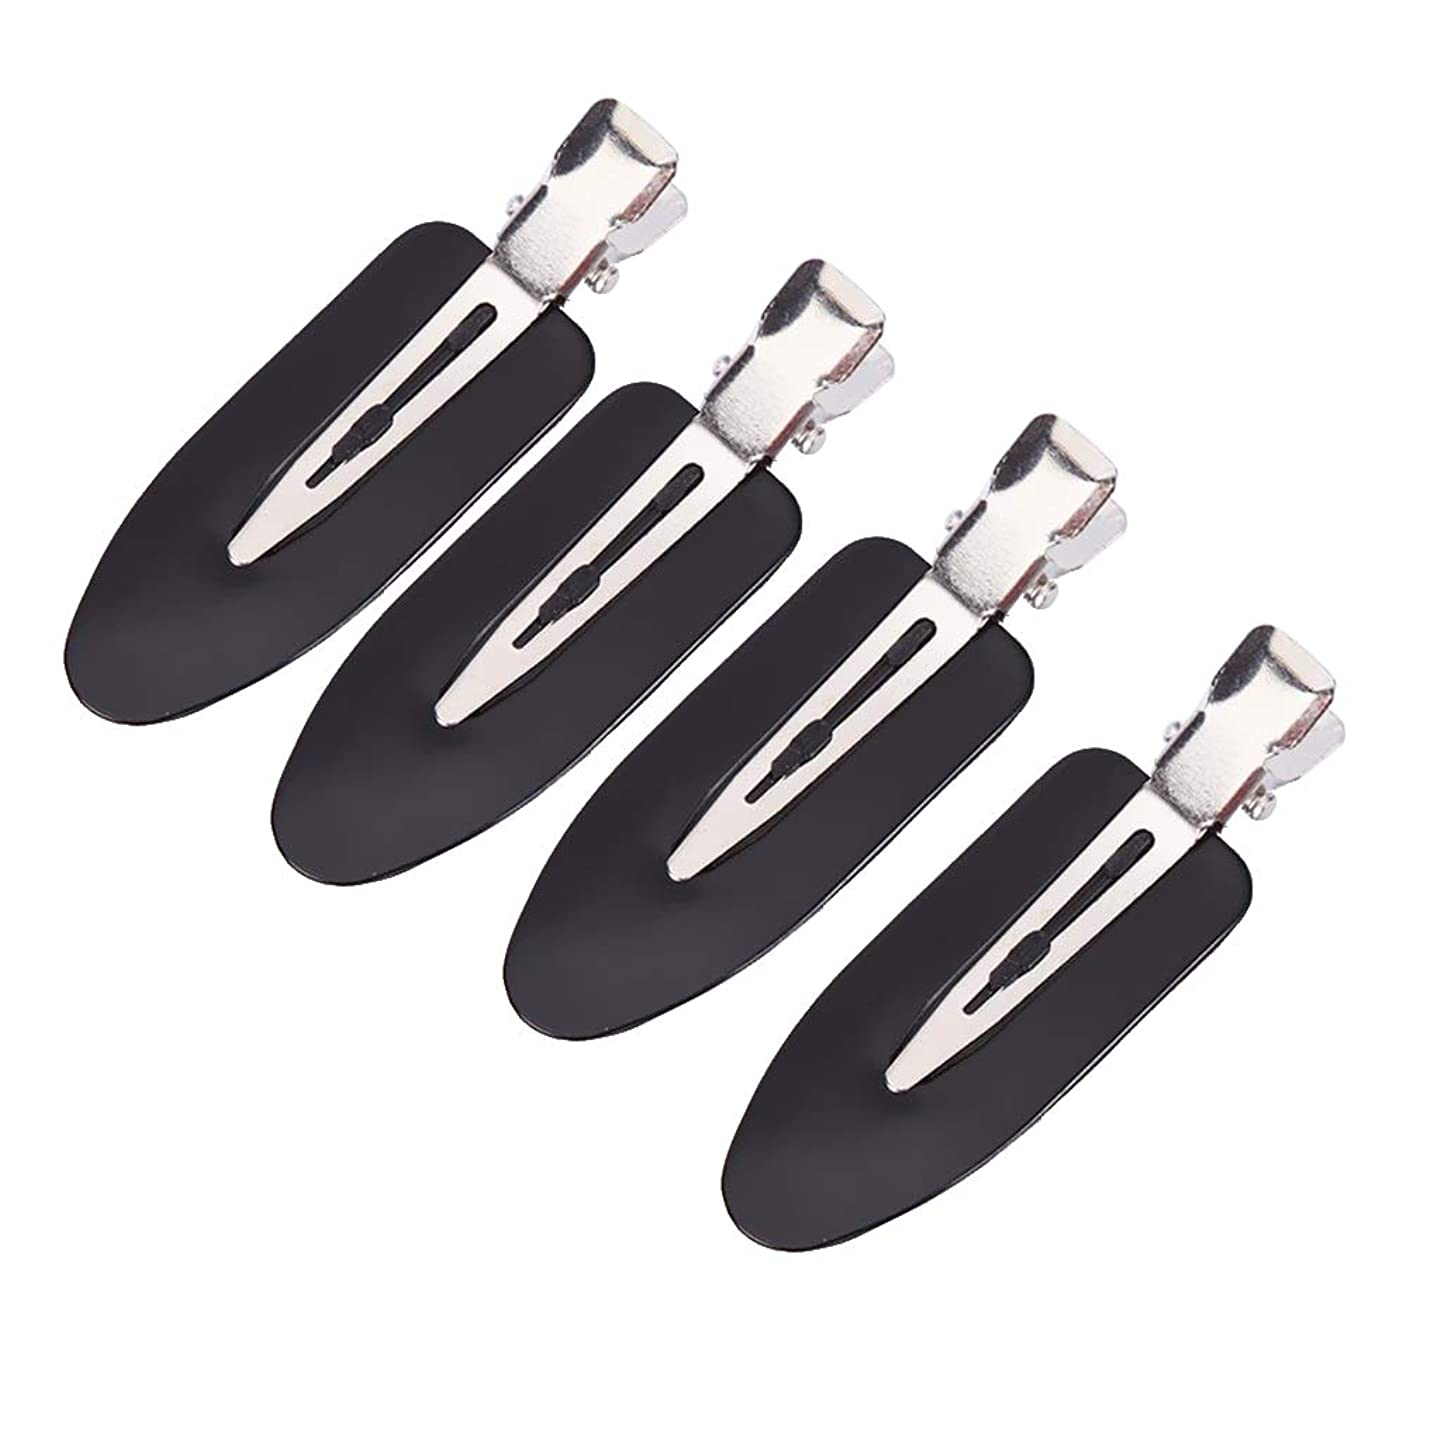 CUTICATE Pack of 4 Seamless Hair Clips, Leaf Shape Traceless Makeup Hair Clips Positioning Clamps for Hairstyle Bangs